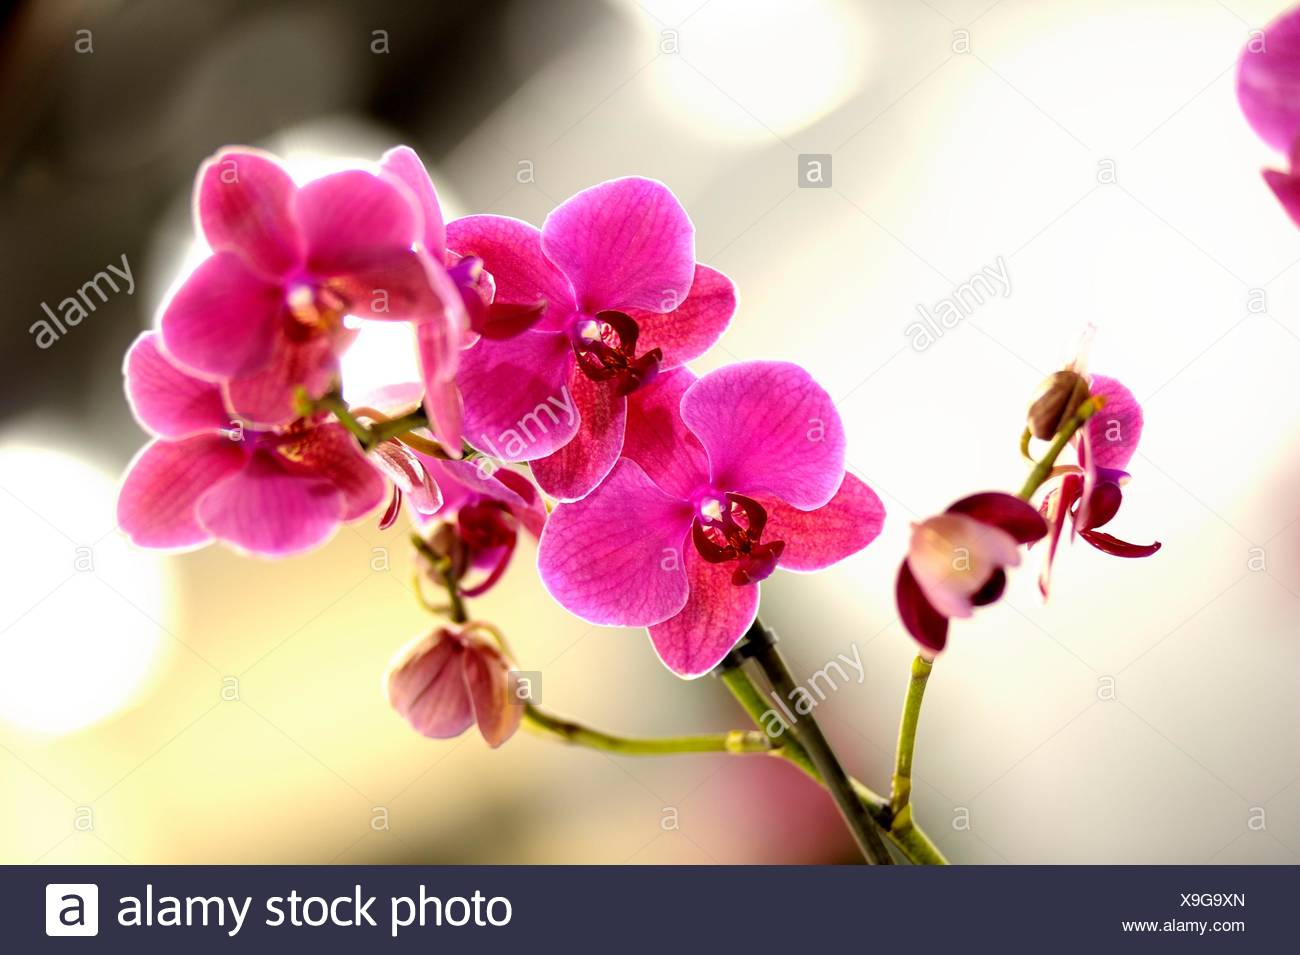 Orchids with blurred background - Stock Image